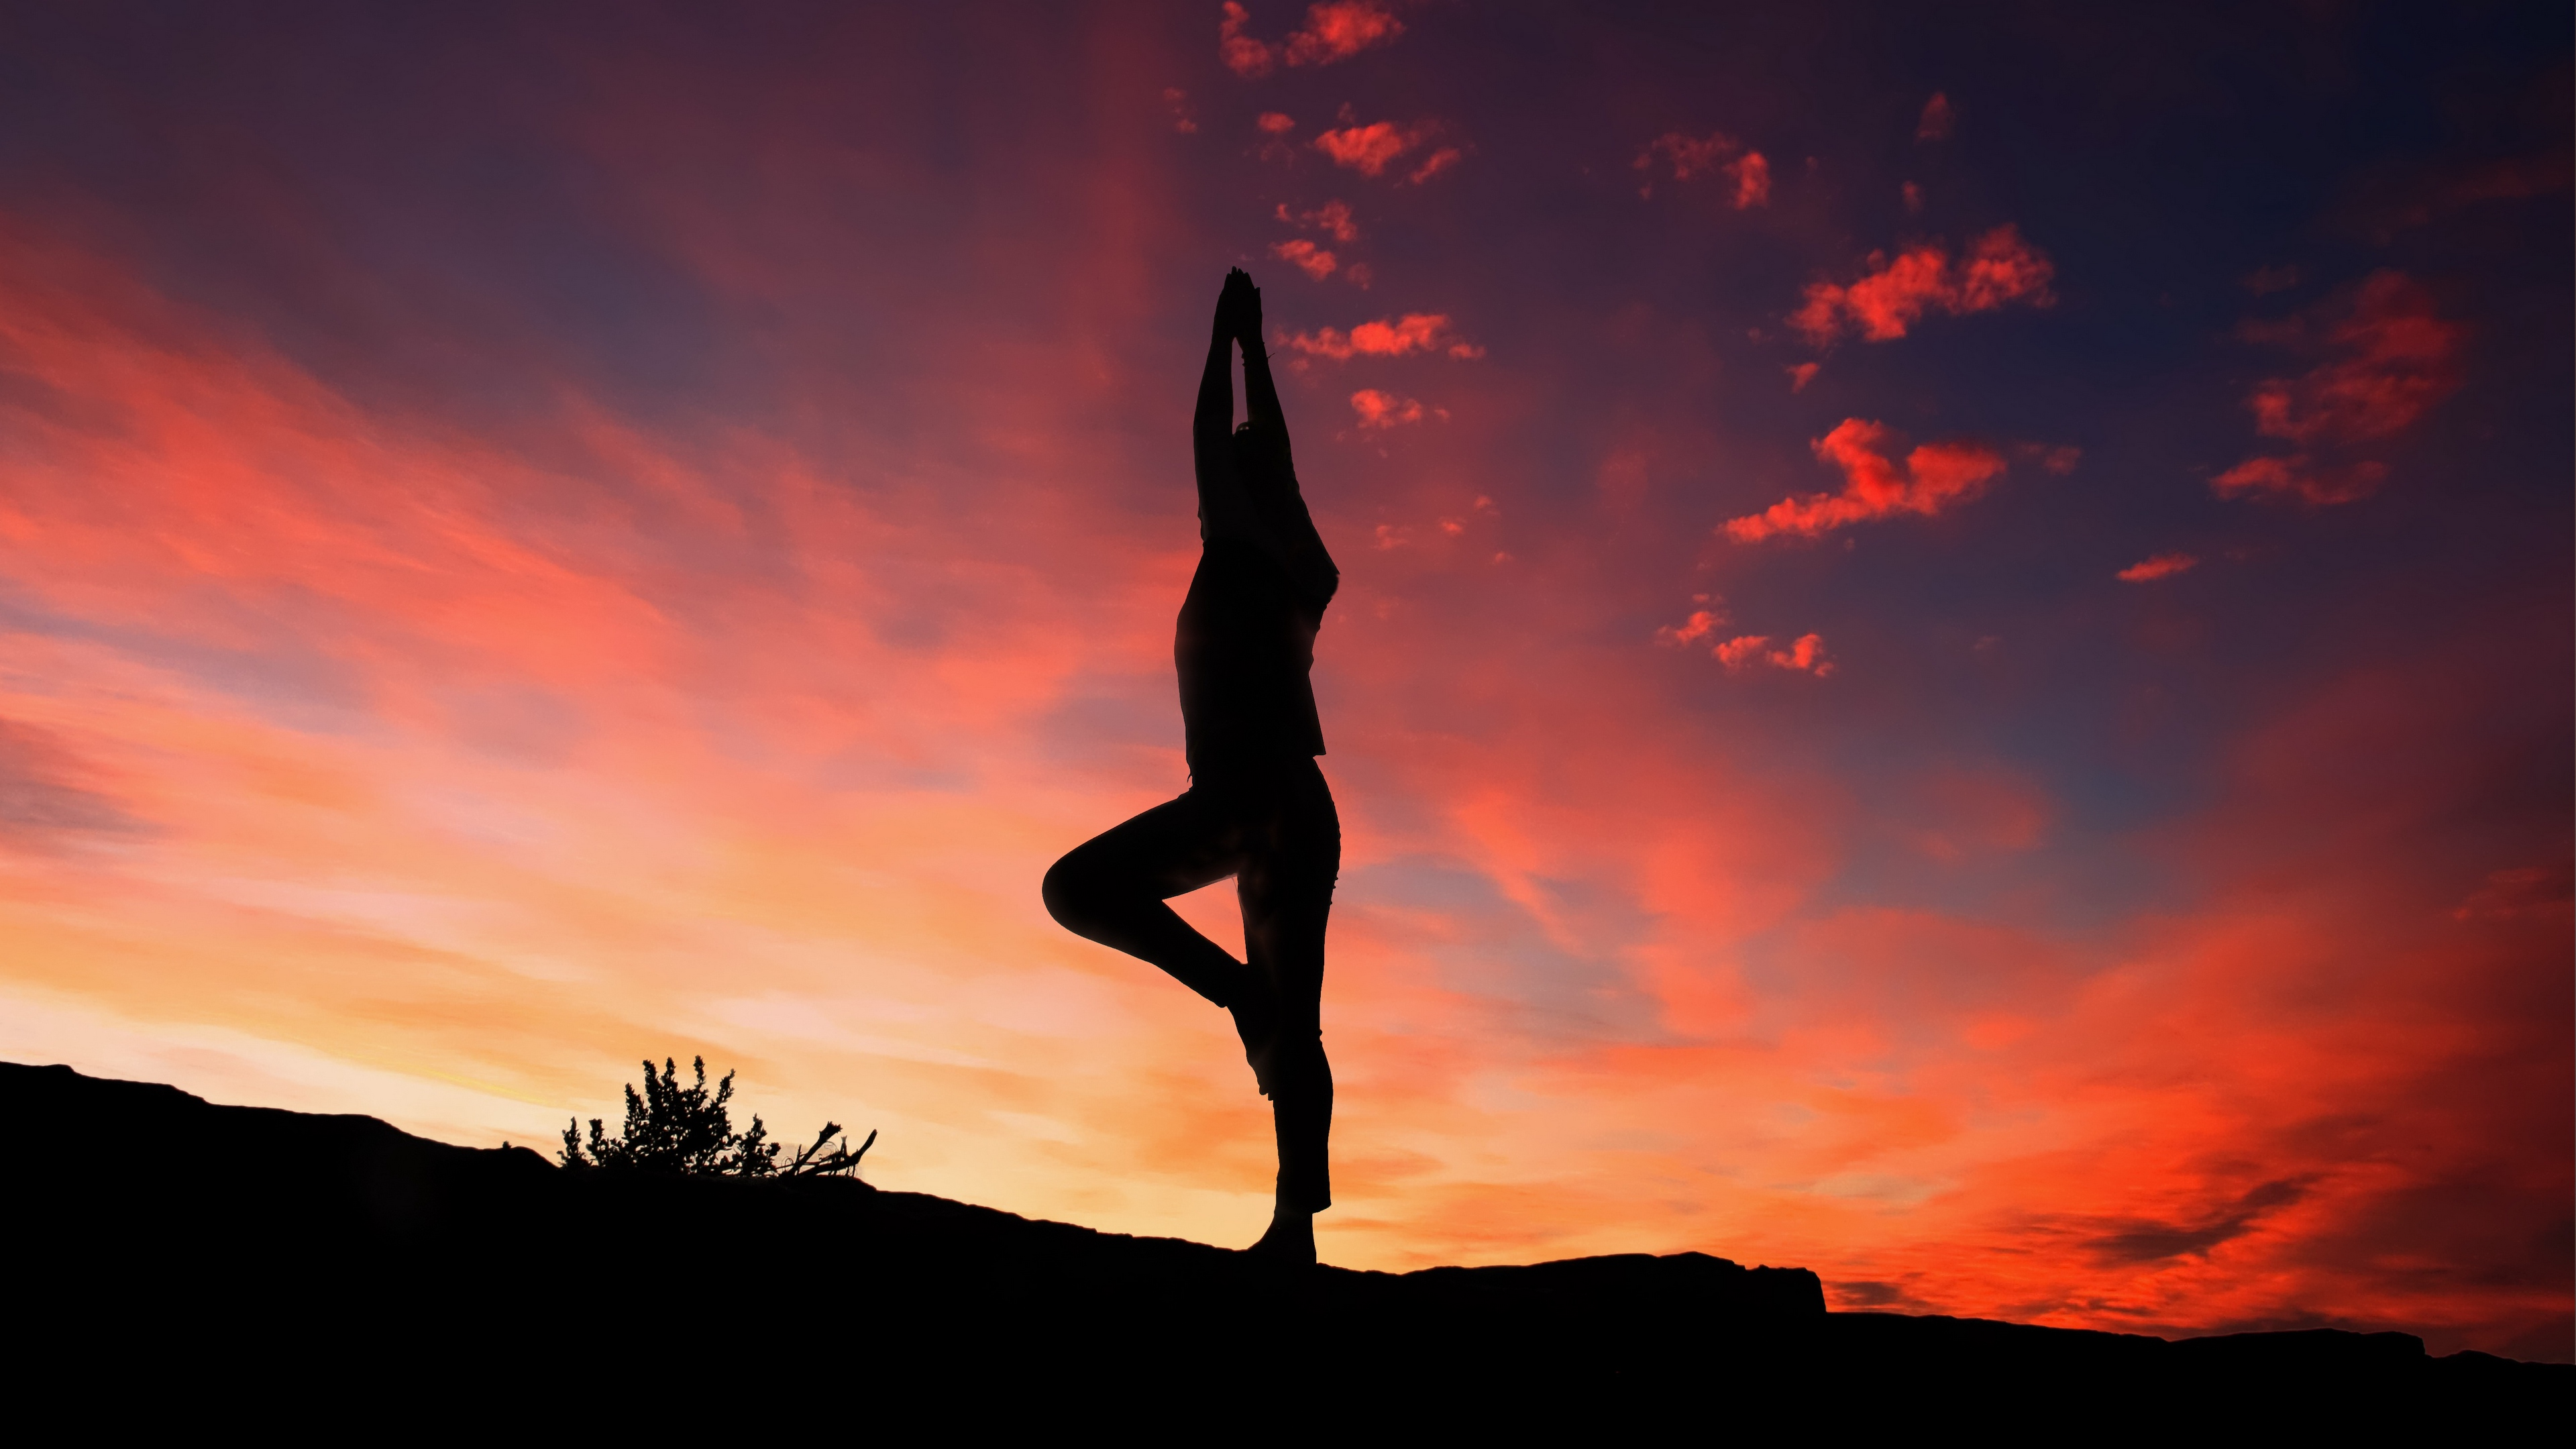 yoga silhouette sunset man 4k 1540063257 - yoga, silhouette, sunset, man 4k - yoga, sunset, Silhouette